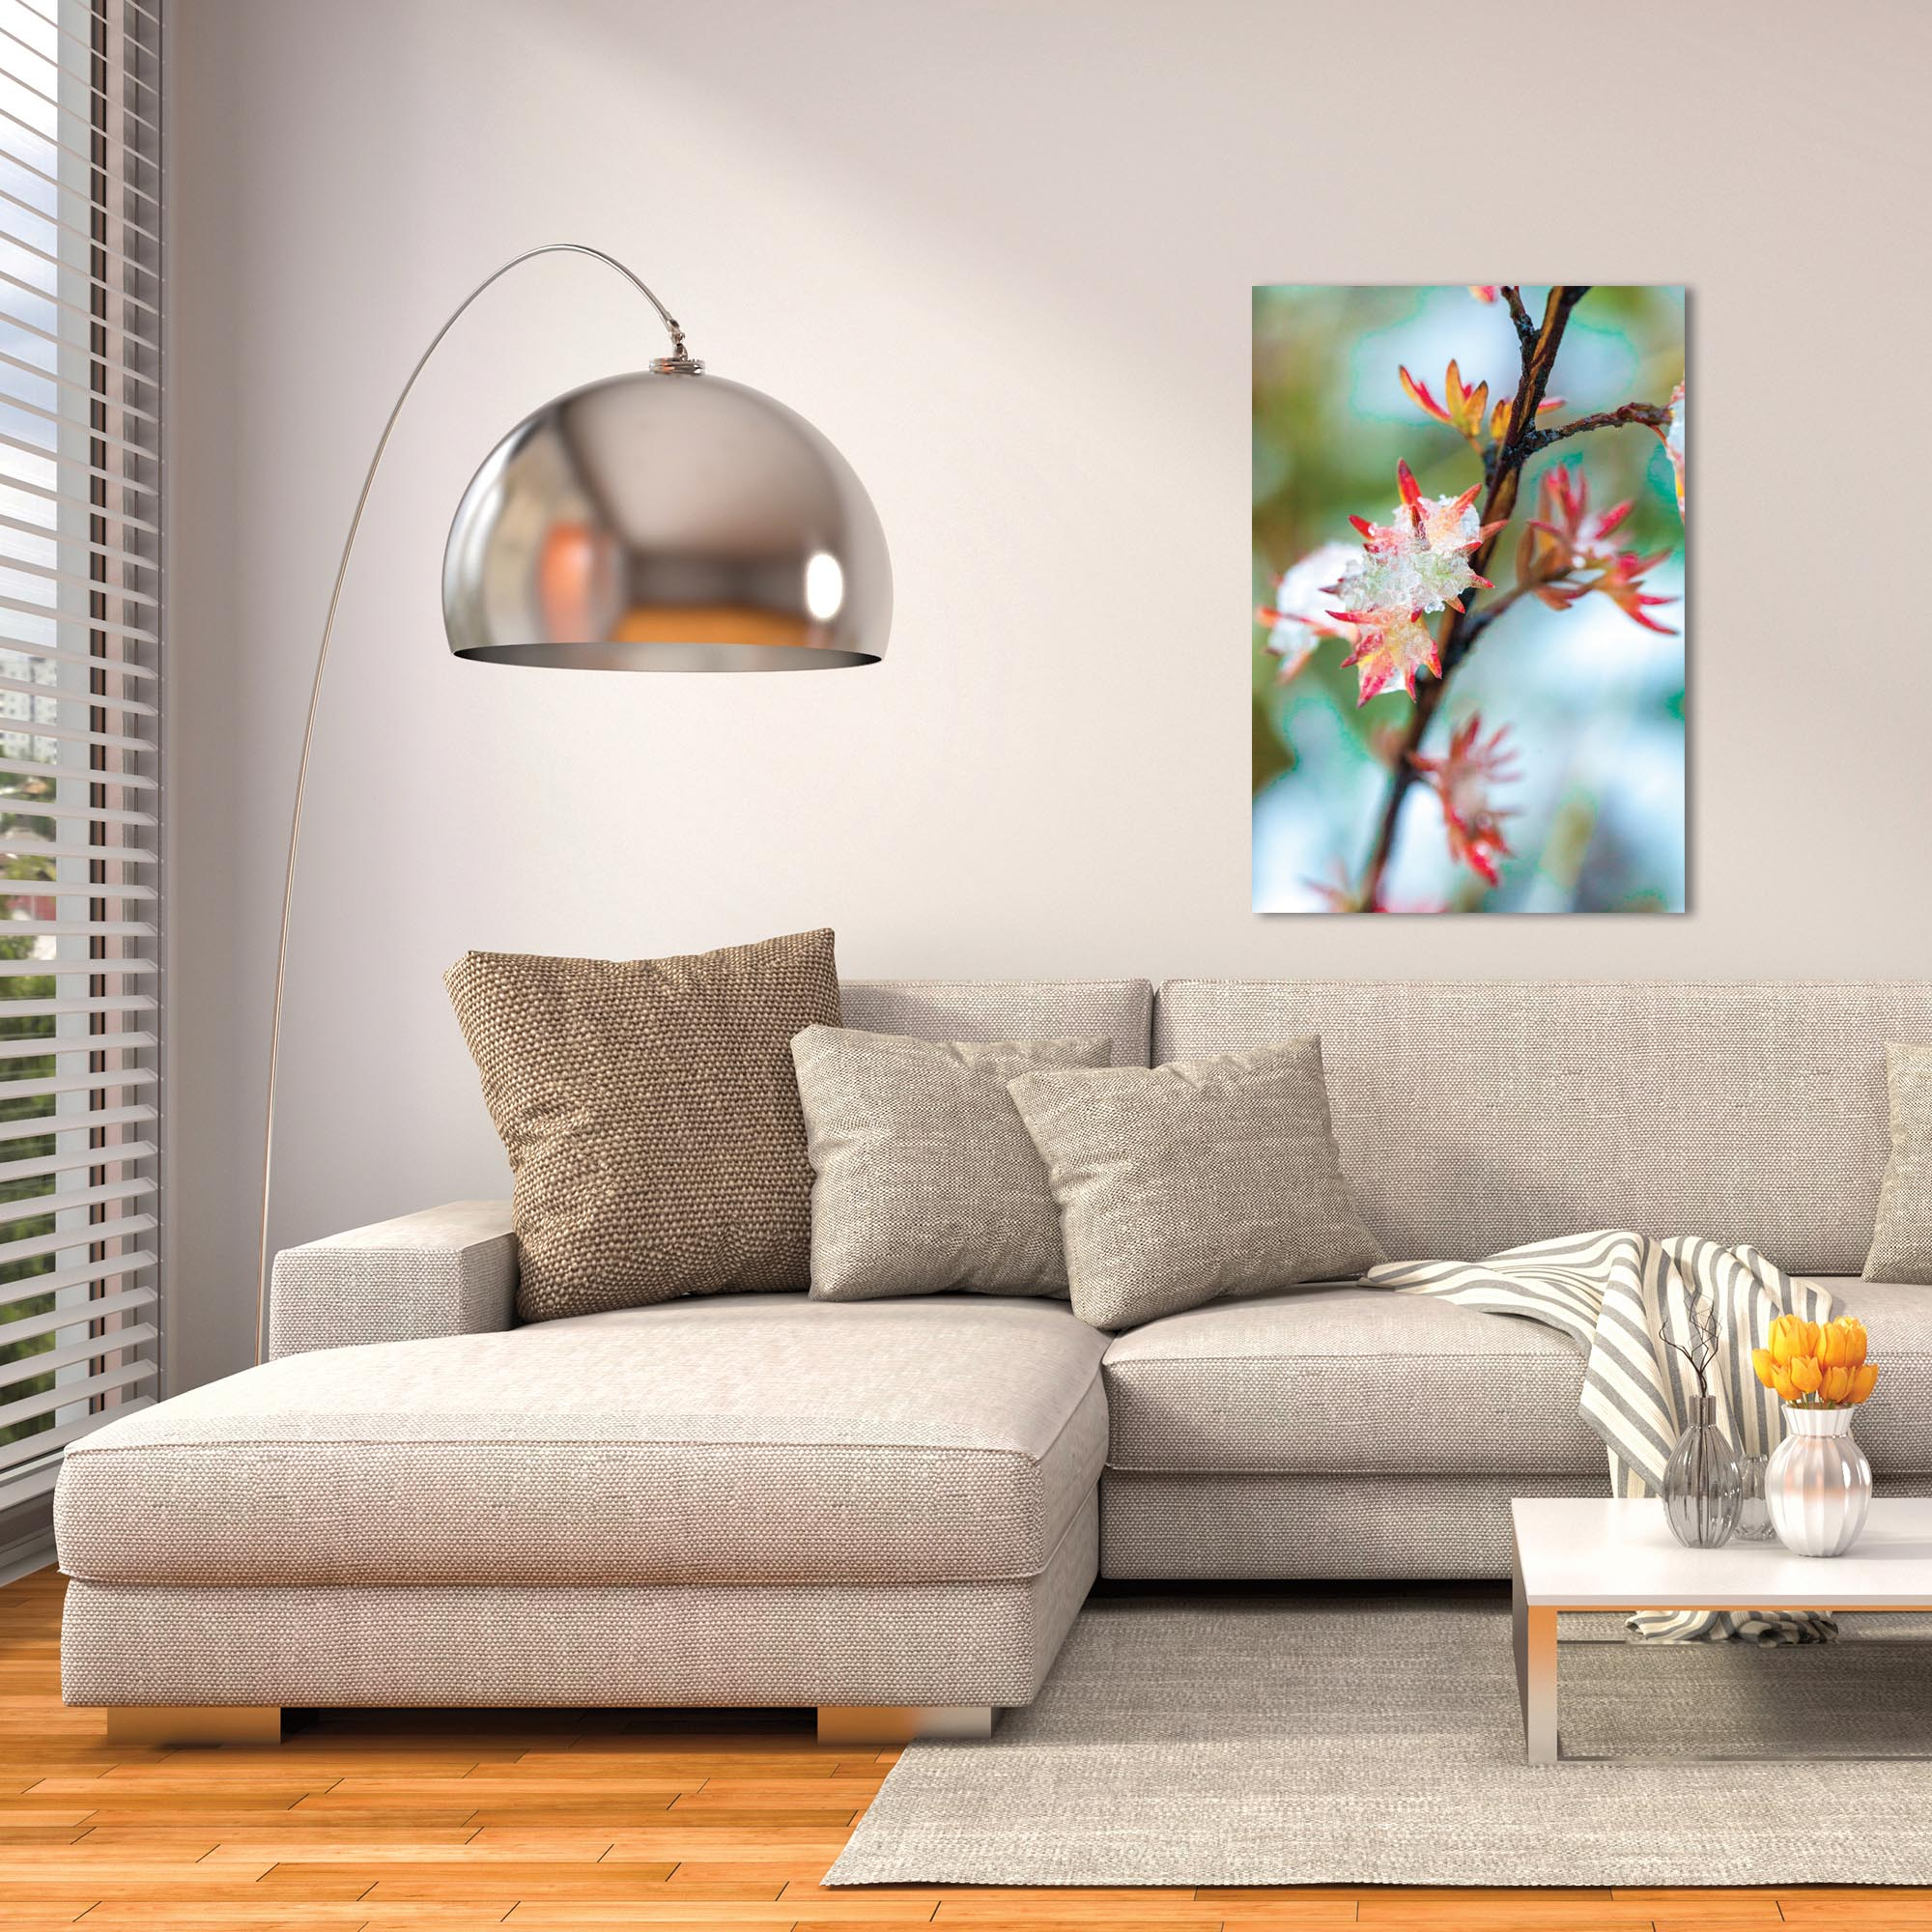 Nature Photography 'Icy Autumn' - Winter Blossom Art on Metal or Plexiglass - Lifestyle View